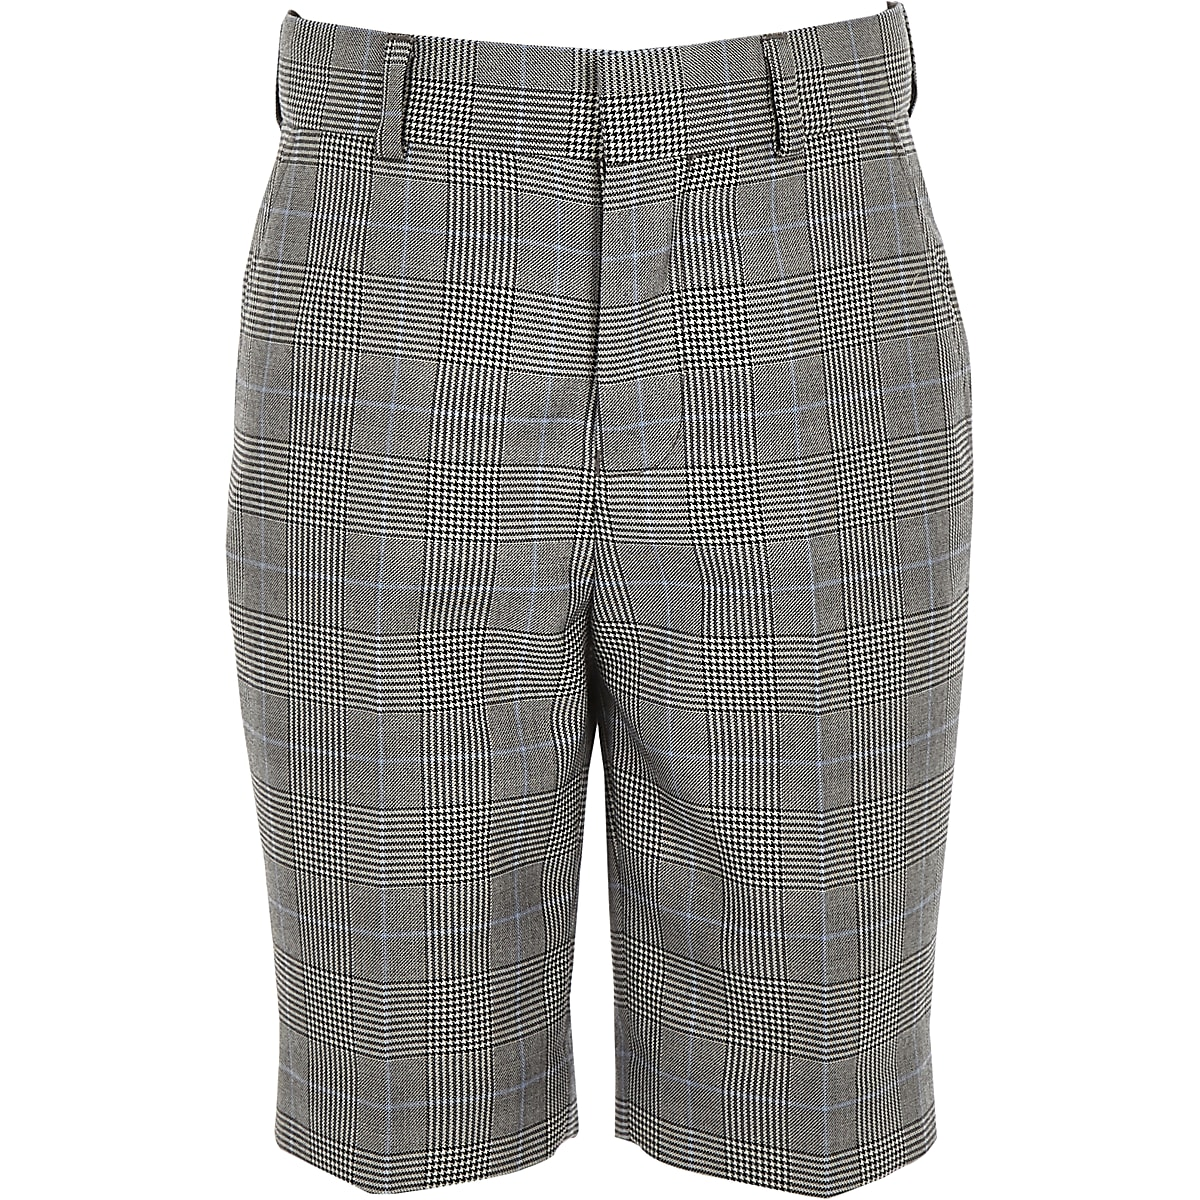 dced9d924 Boys grey mixed check suit shorts - Suit Shorts - Suits - boys